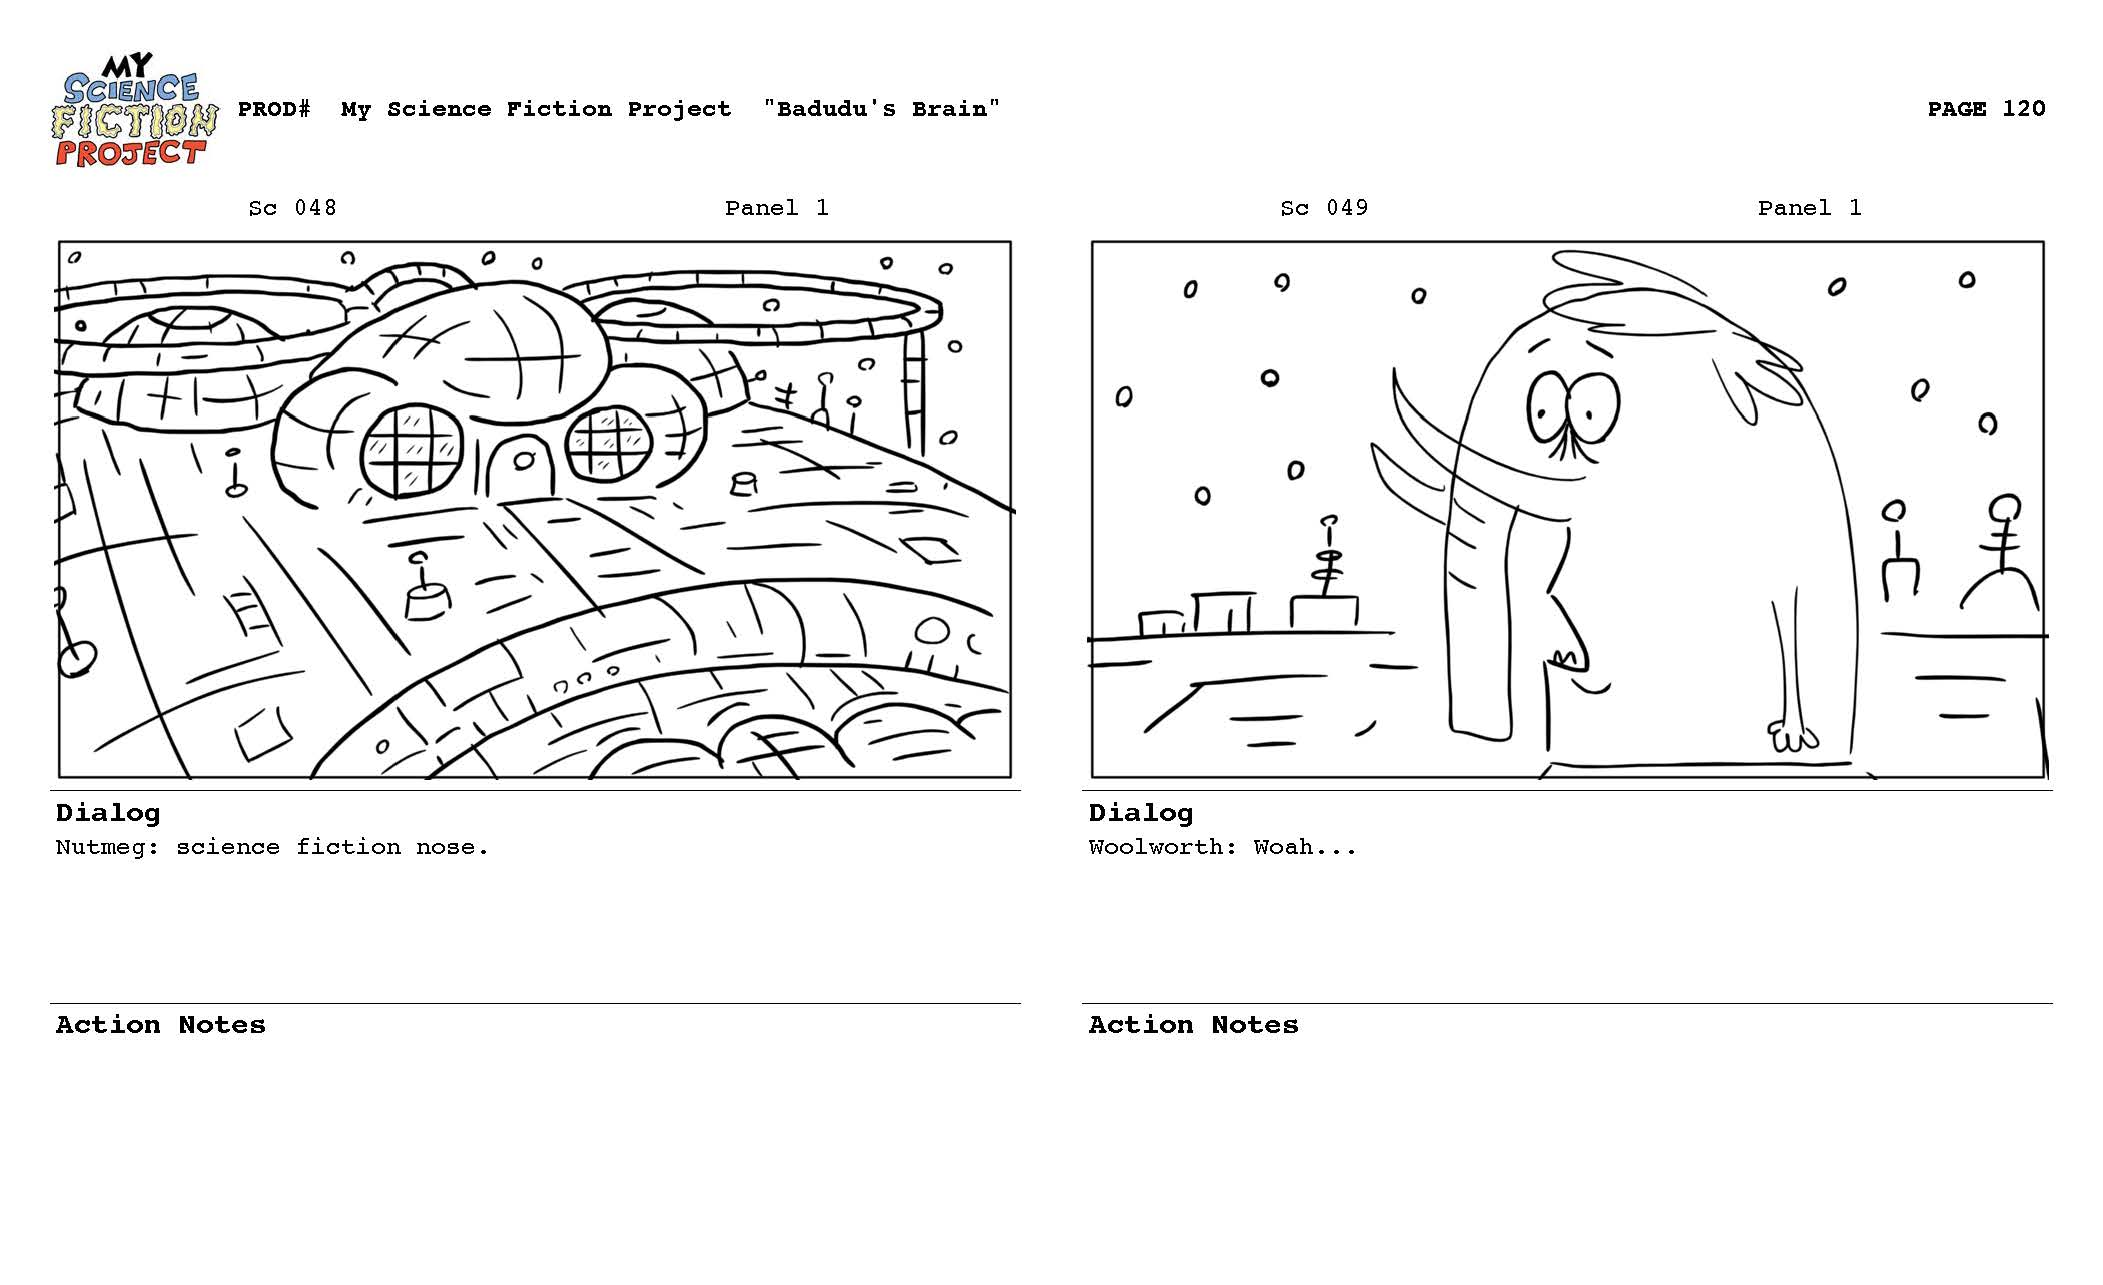 My_Science_Fiction_Project_SB_083112_reduced_Page_120.jpg